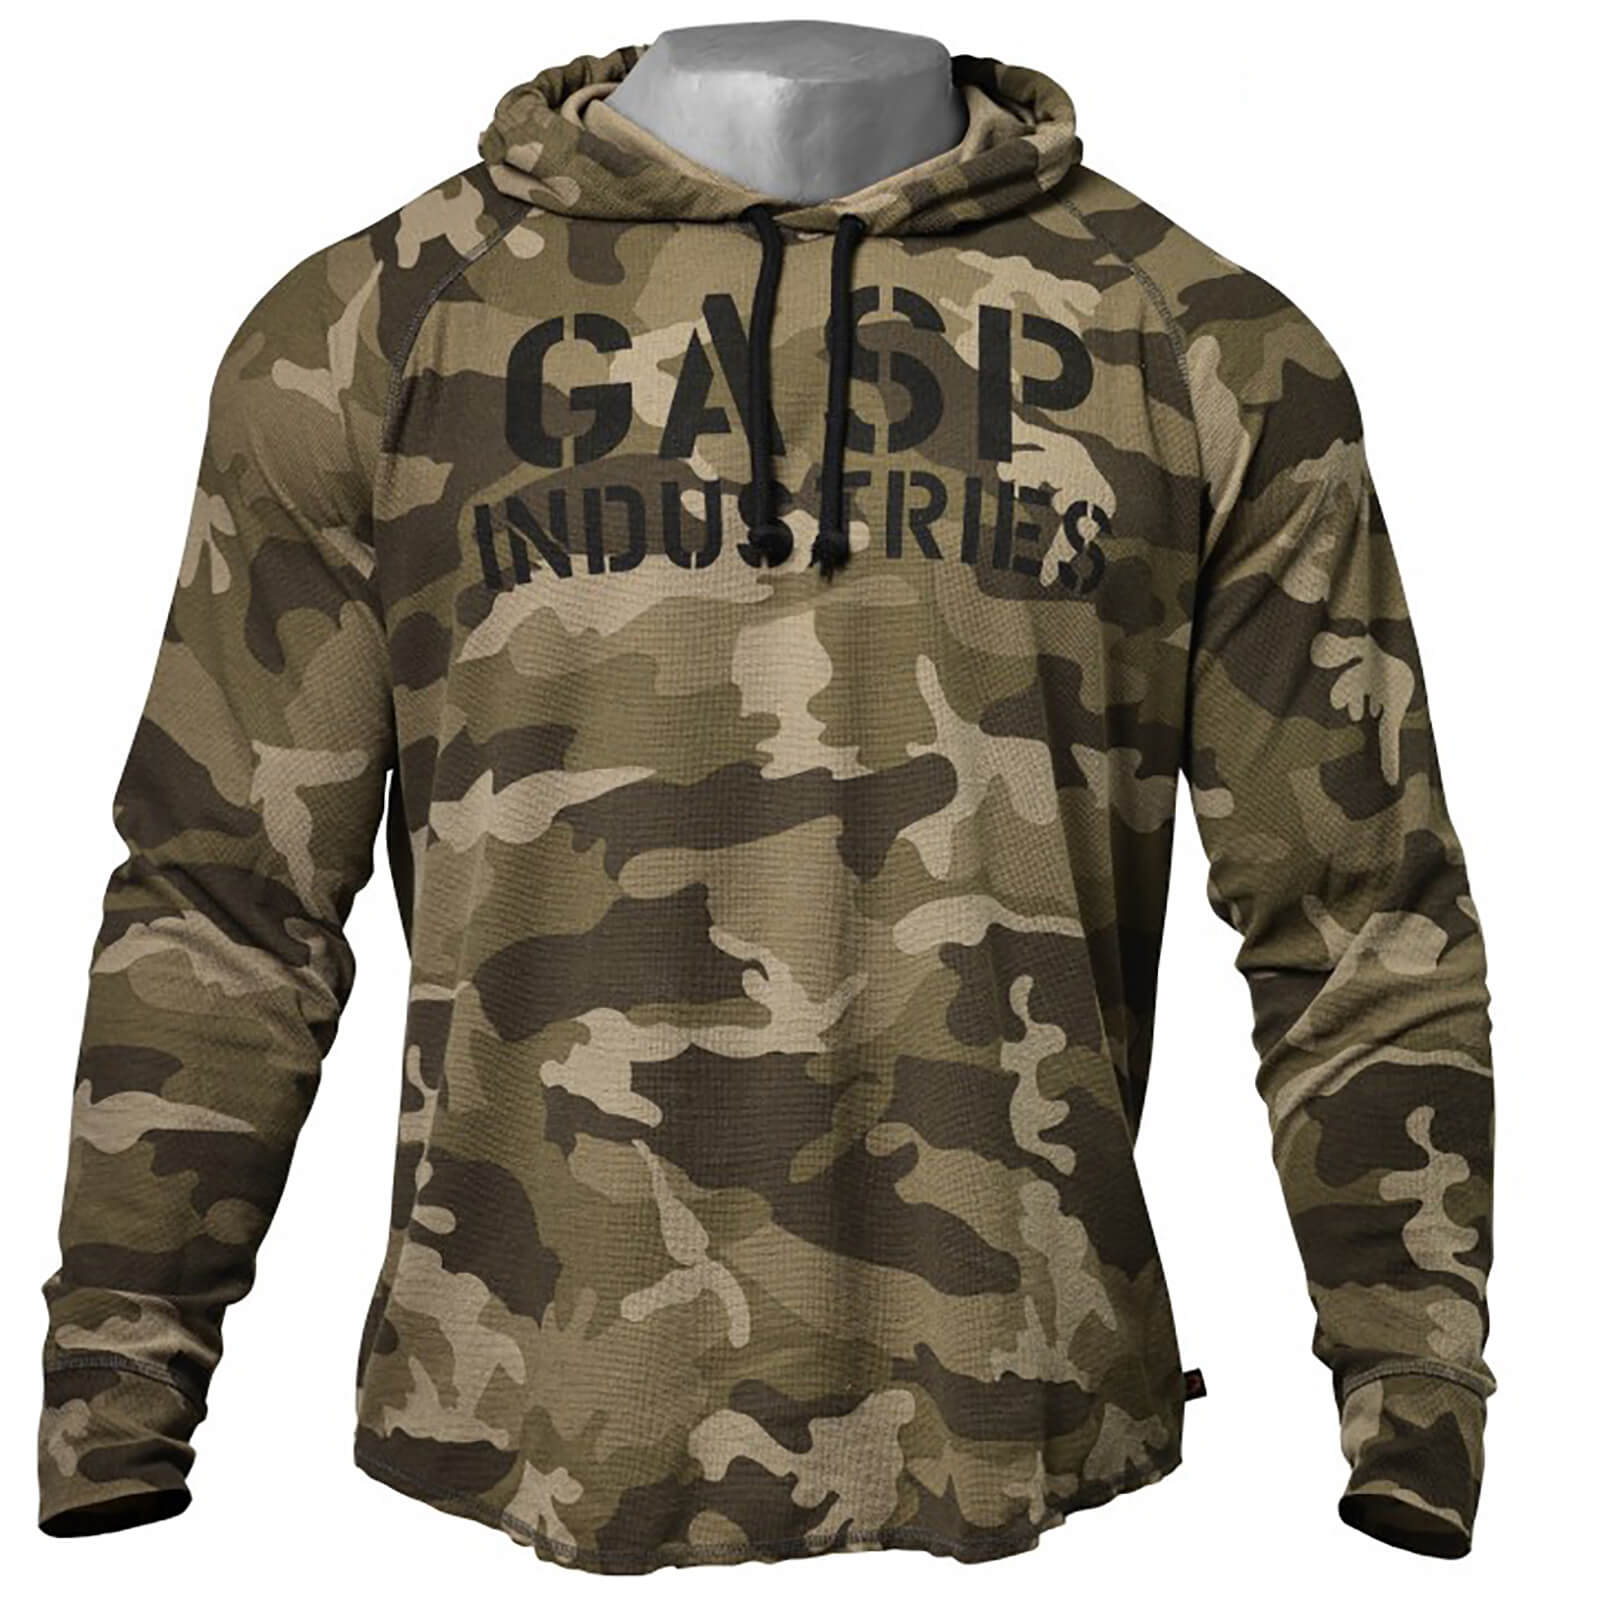 GASP Long Sleeve Thermal Hoody - Green Camoprint - M